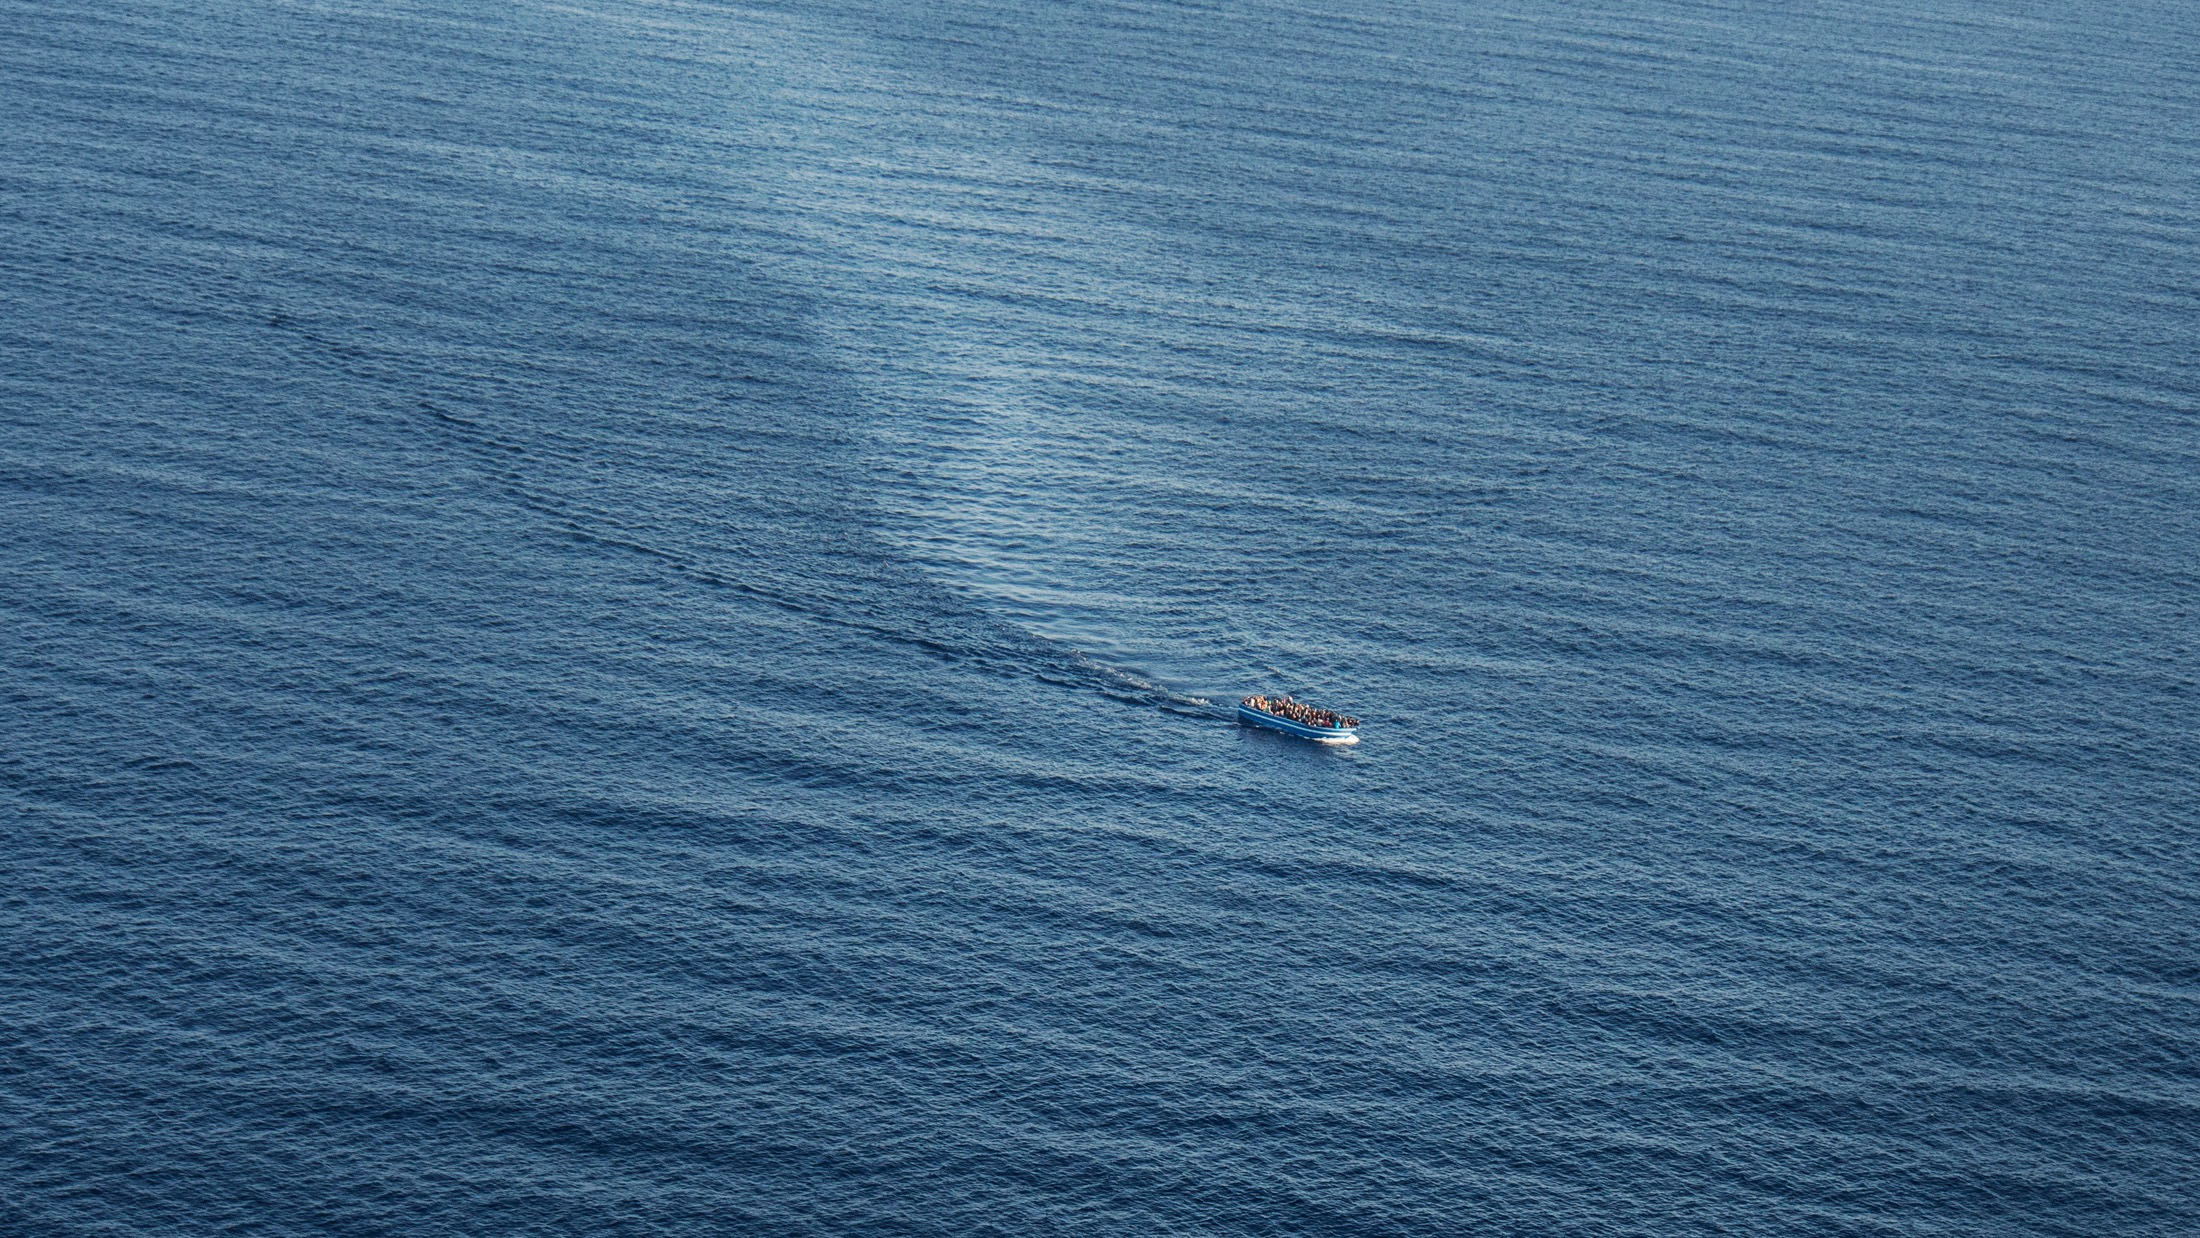 A boat carrying refugees off the coast of Italy in summer 2014. Thousands of refugees attempt to make the perilous journey to Europe every year, with hundreds dying. In the summer of 2014 the Mare Nostrum search and rescue team picked up over 750 a day.